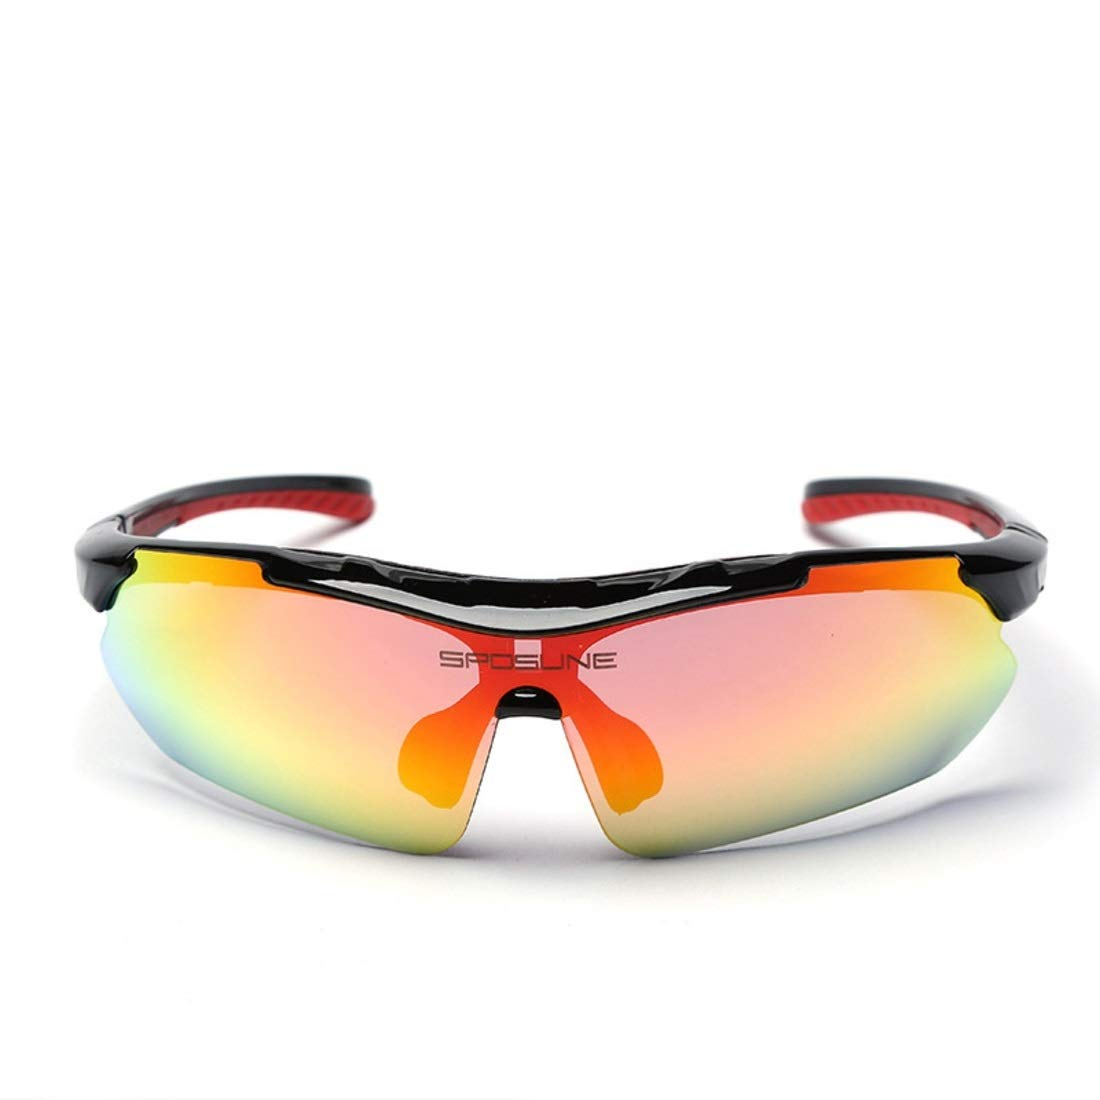 BAOYIT Outdoor Sports Glasses Riding Windproof Sand-Proof Mountaineering Fish Glasses for Women Men (Color : Black) by BAOYIT